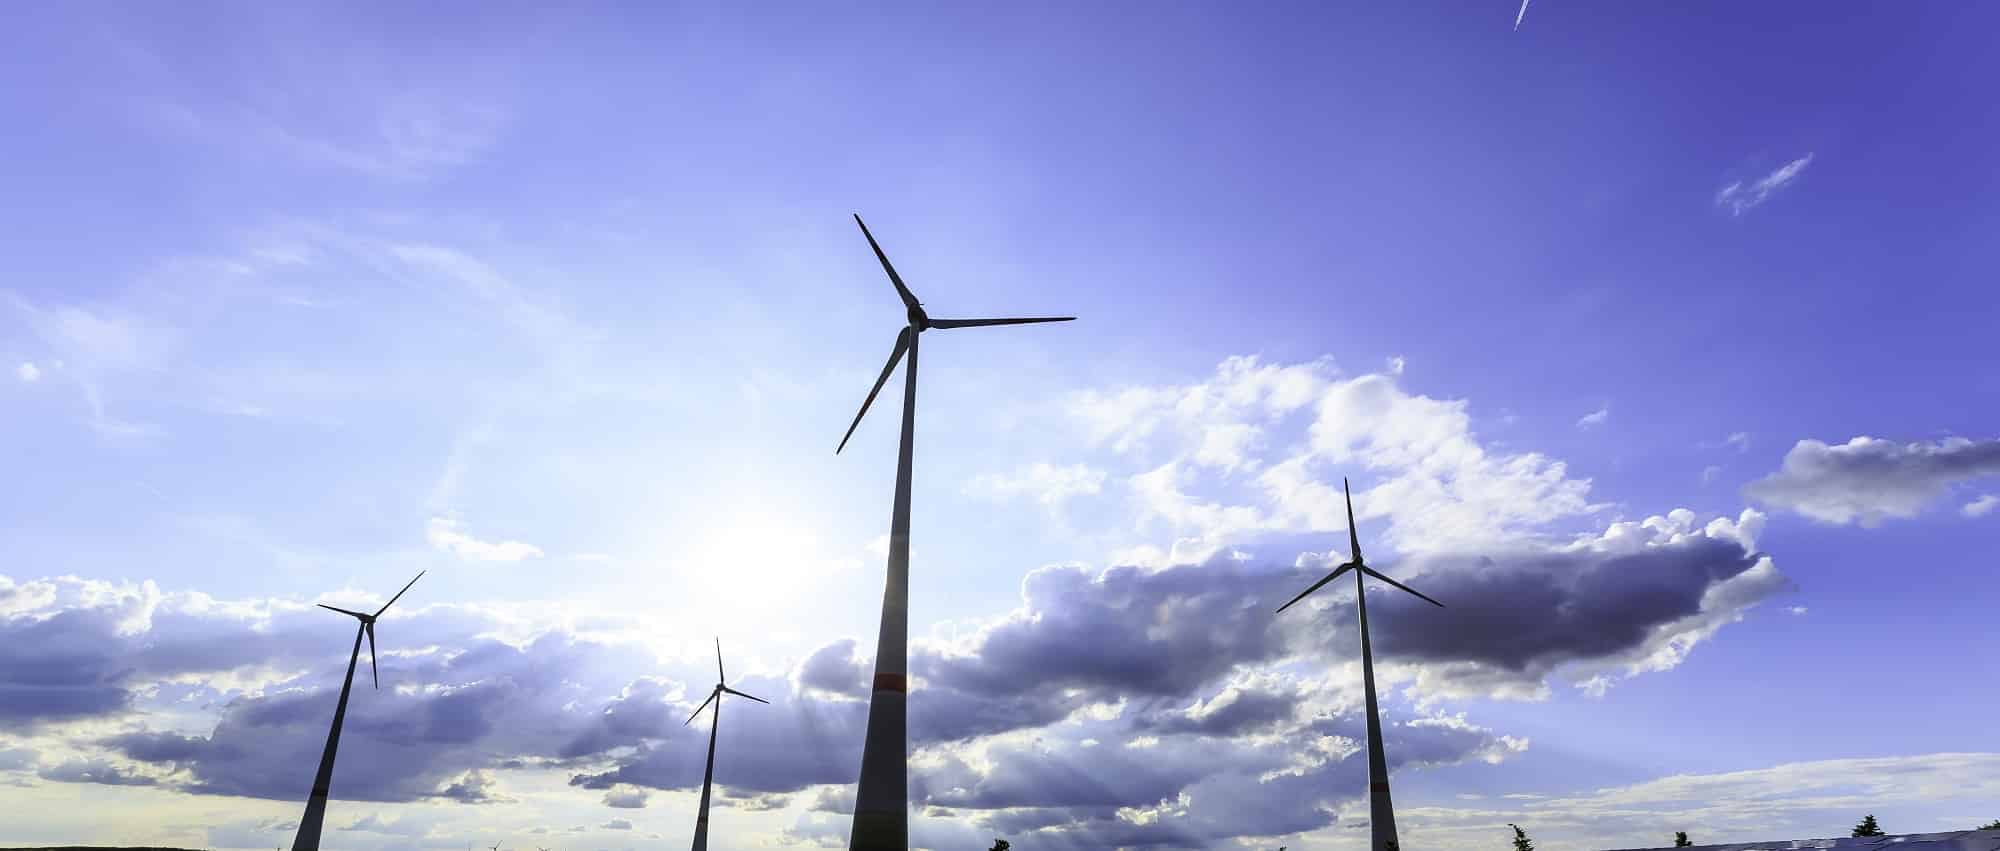 Environmental studies manager for wind industry